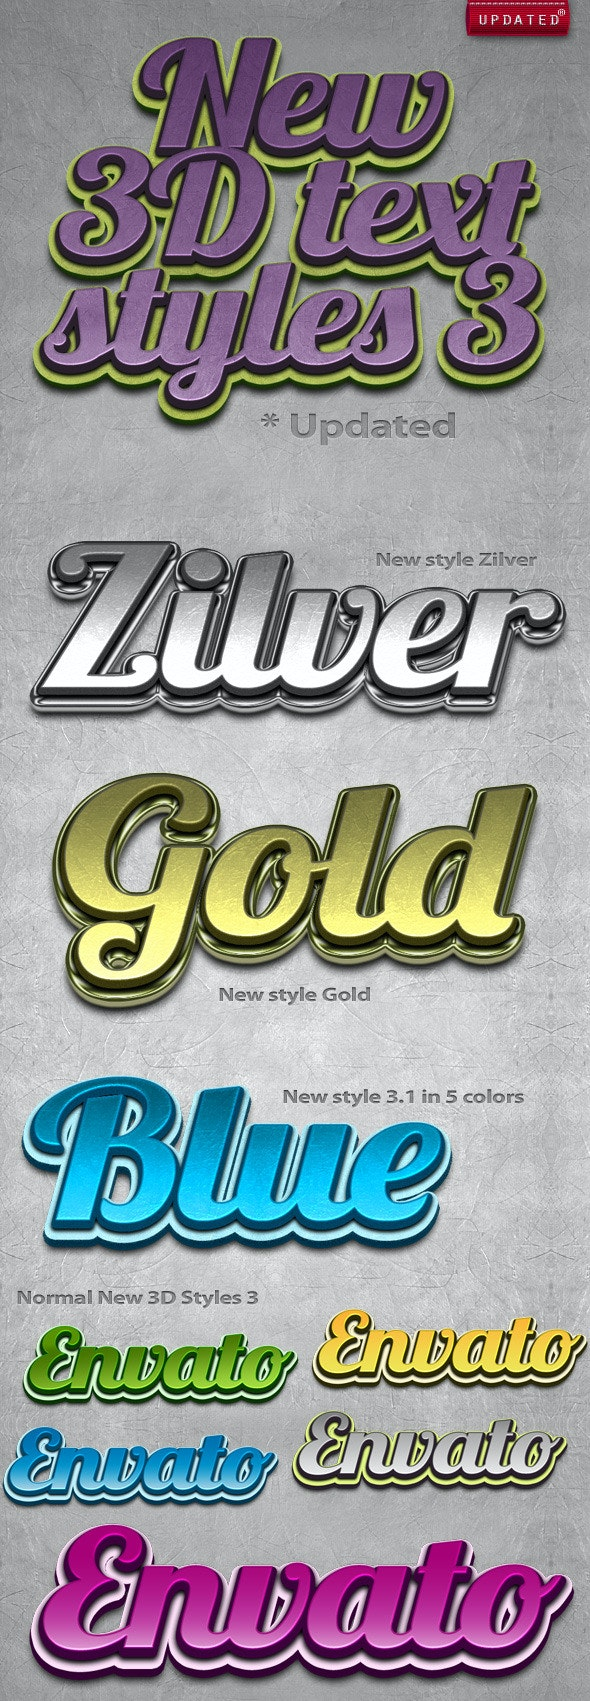 New 3D Text Styles #3 - Text Effects Styles